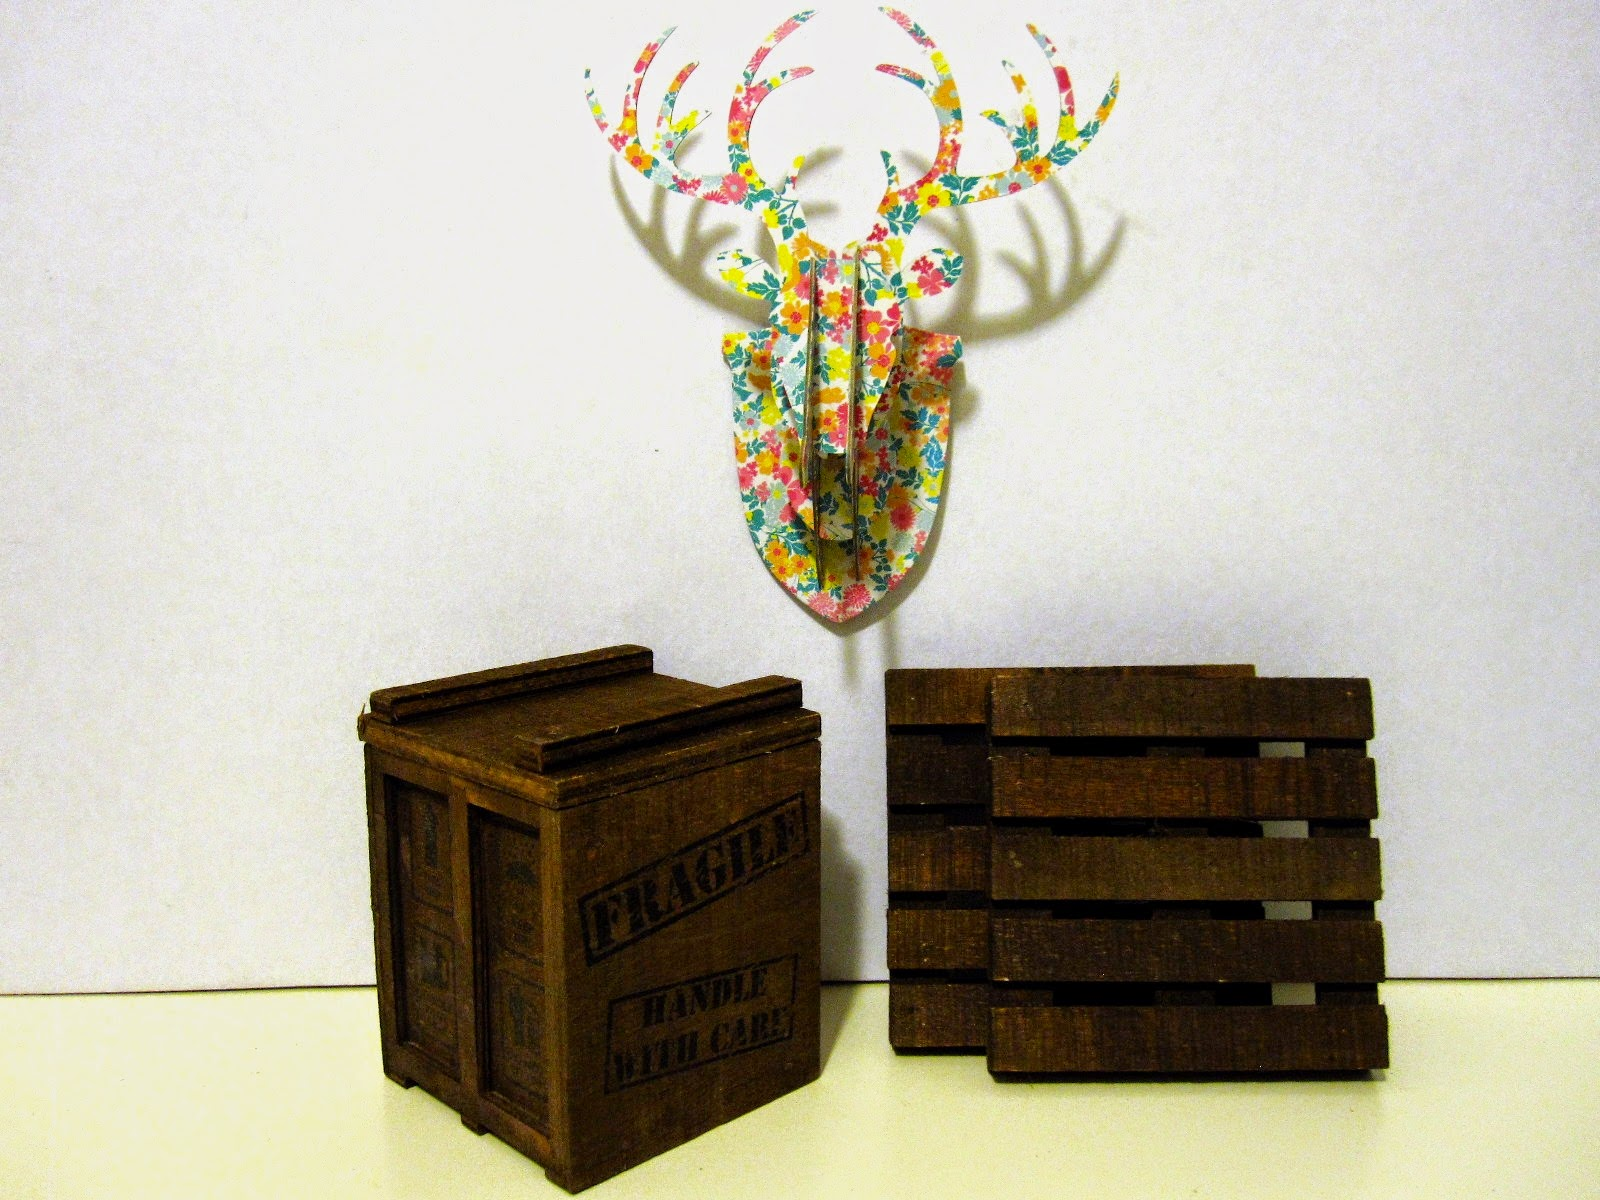 Miniature Typo cardboard stag head, wooden packing  crate and pallets.